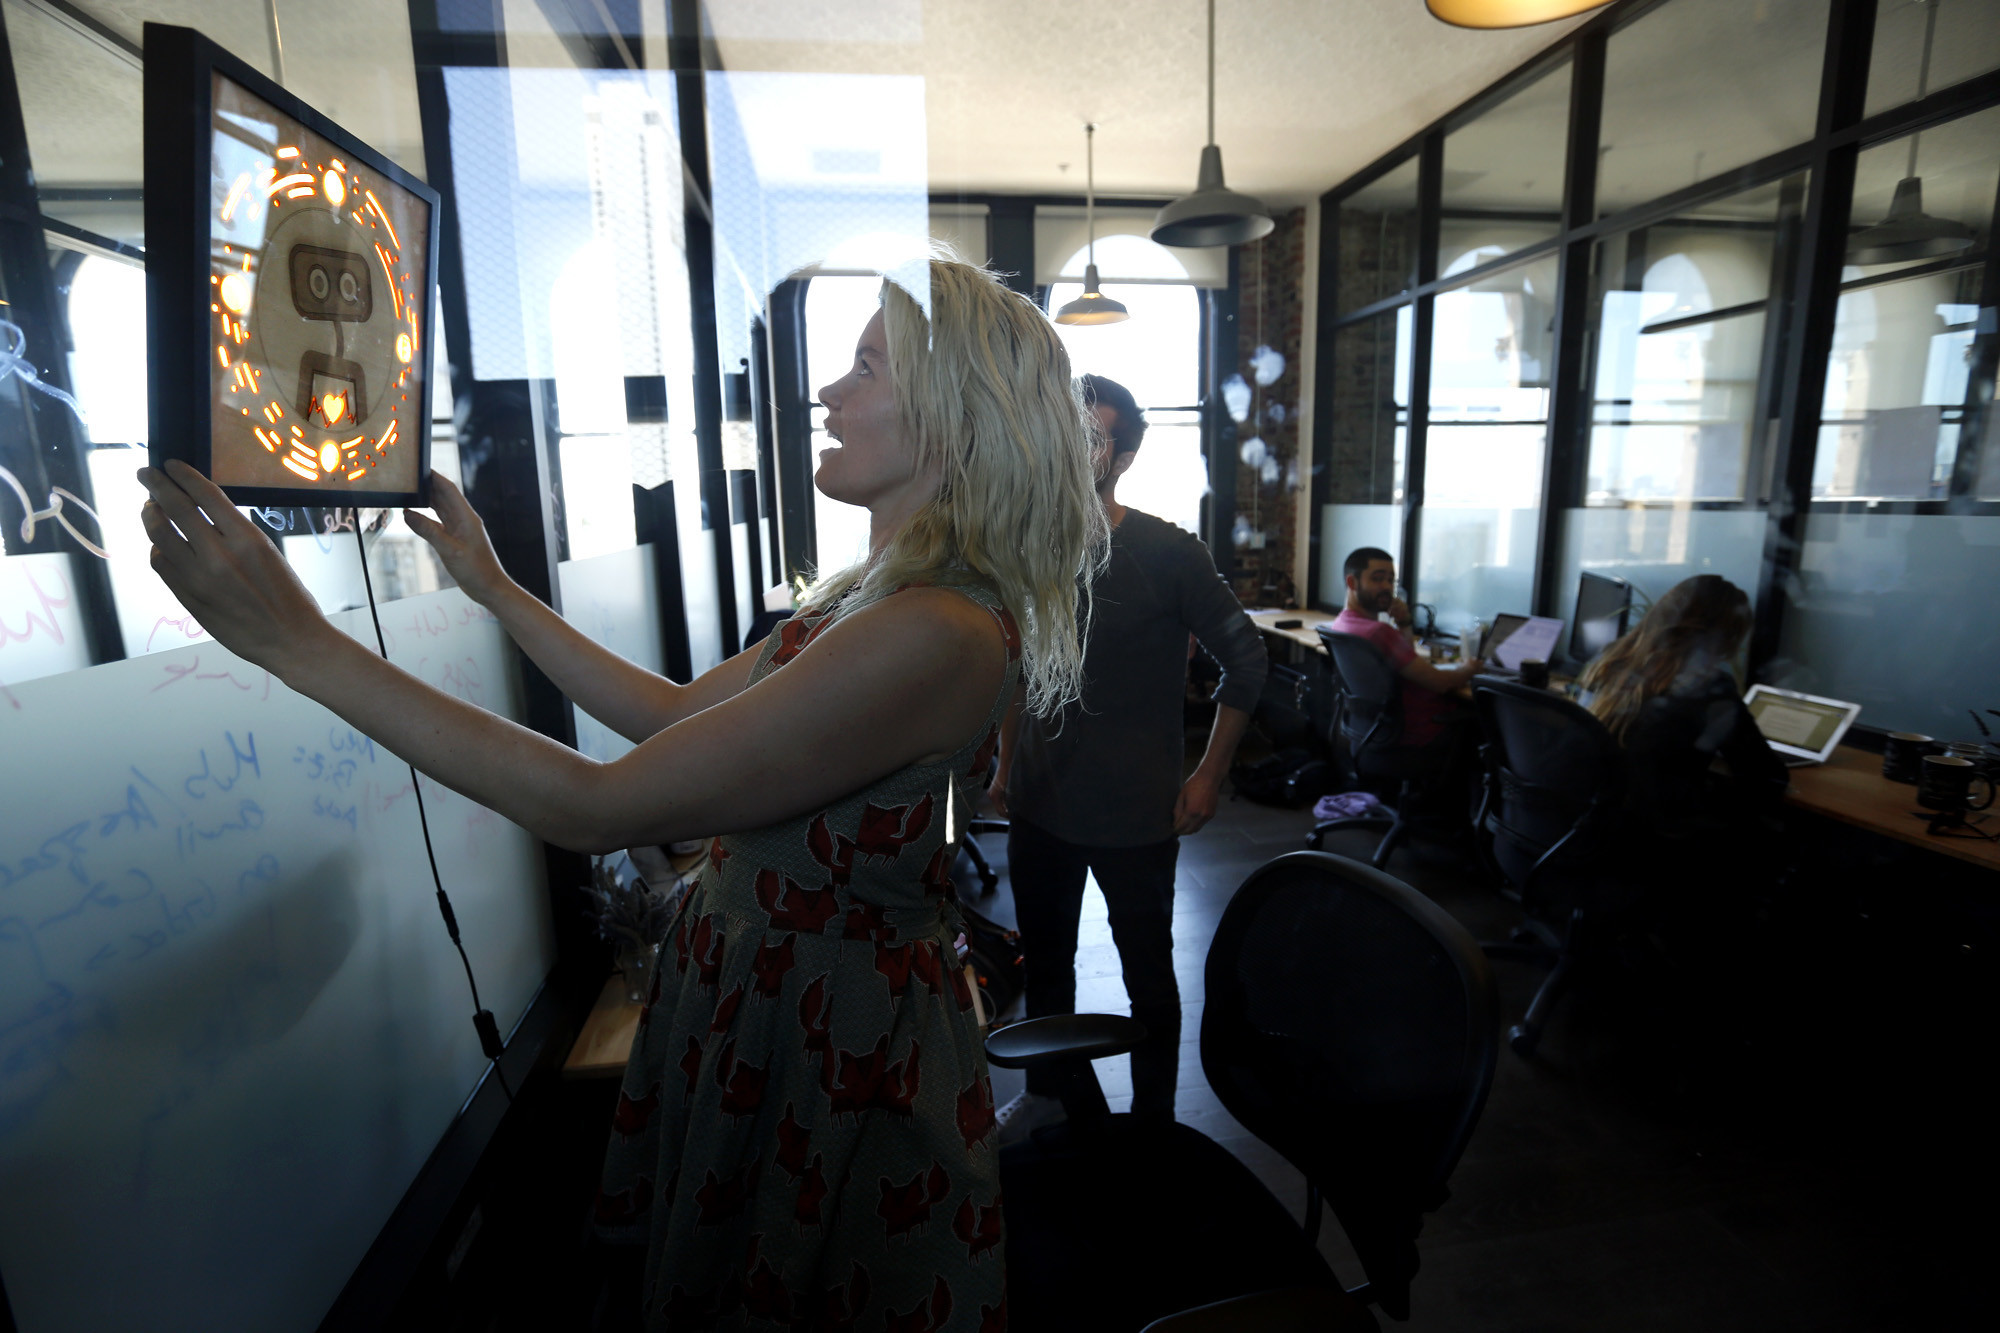 Pamela Fox, Woebot's chief technology officer, hangs a picture frame that contains the logo for the start-up as others work in their San Francisco office.